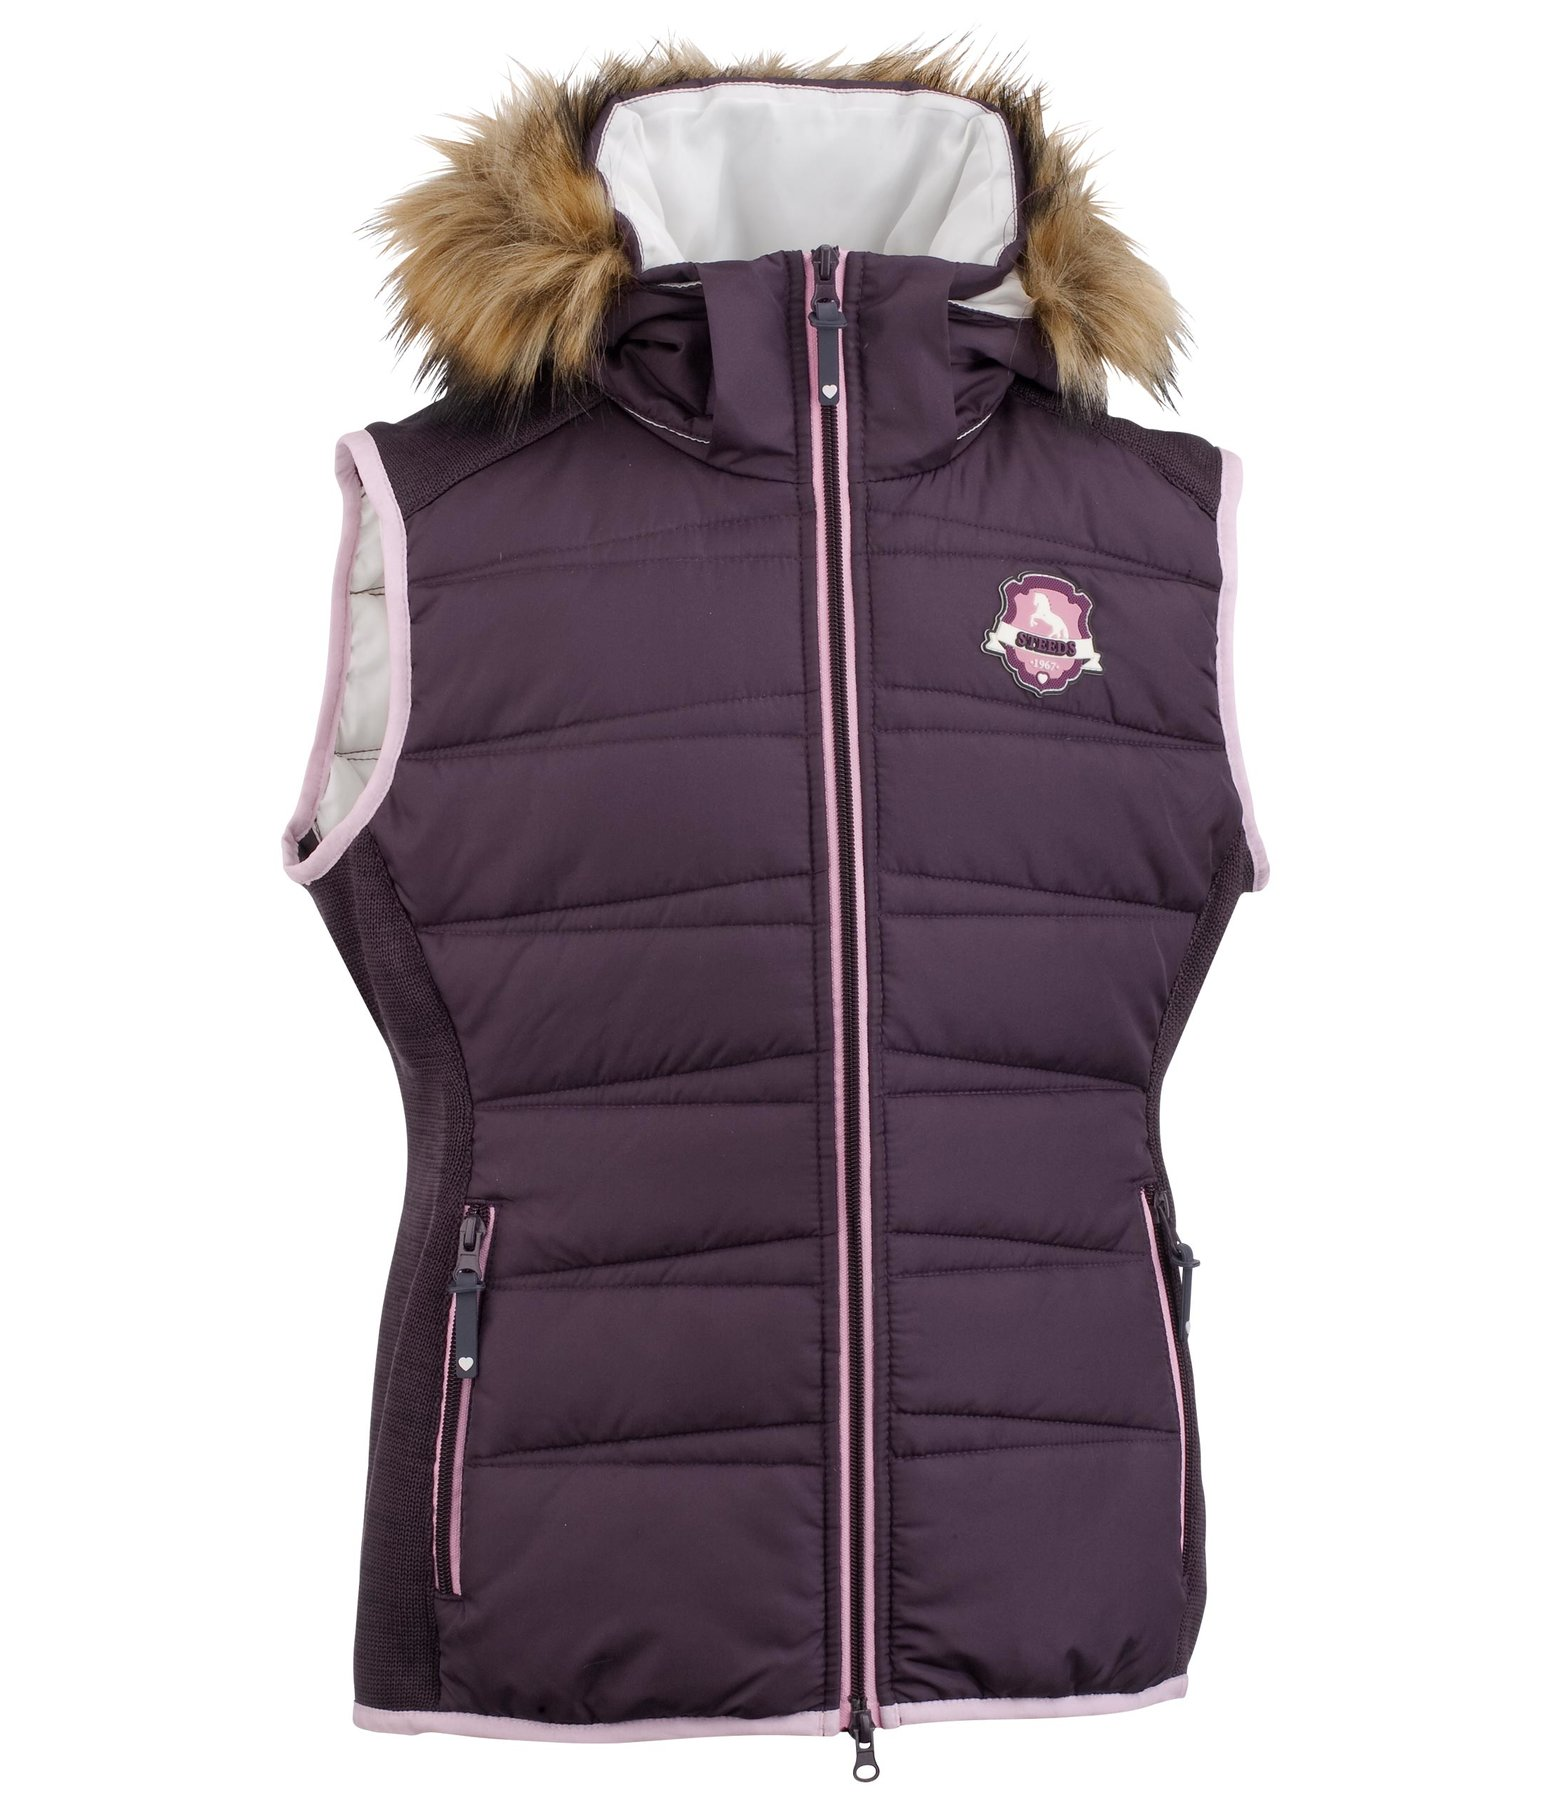 Children's Hooded Riding Gilet Hope